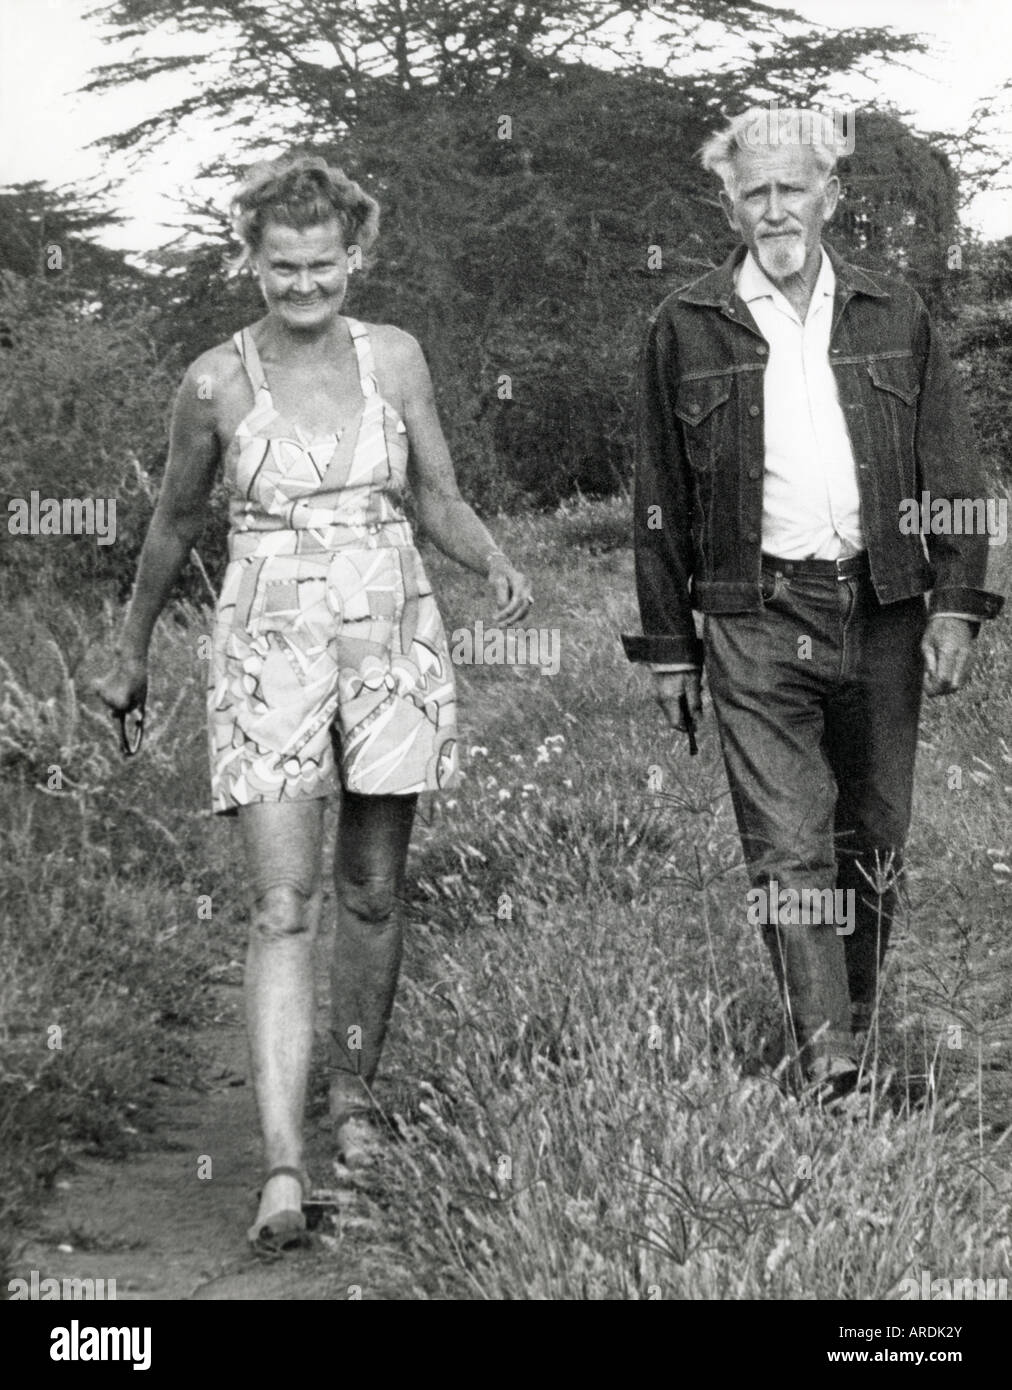 https://c8.alamy.com/comp/ARDK2Y/joy-and-george-adamson-were-famous-worldwide-for-their-work-to-free-ARDK2Y.jpg